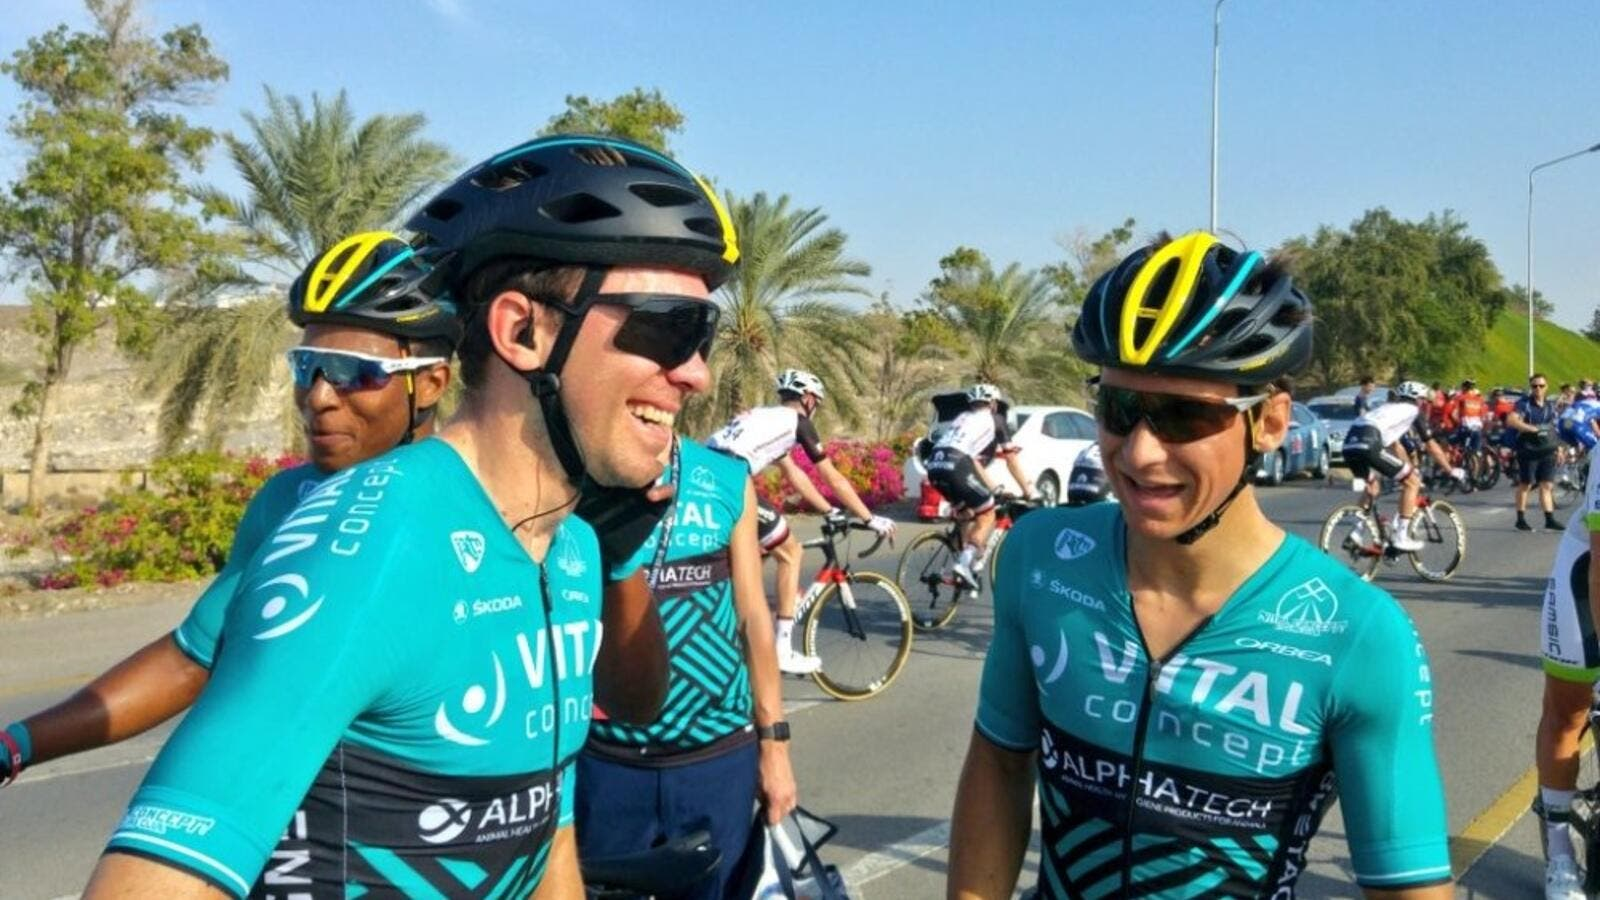 Vital Concept's French sprinter Bryan Coquard came out on top at the end of first stage of the Tour of Oman. (Photo: TOO)